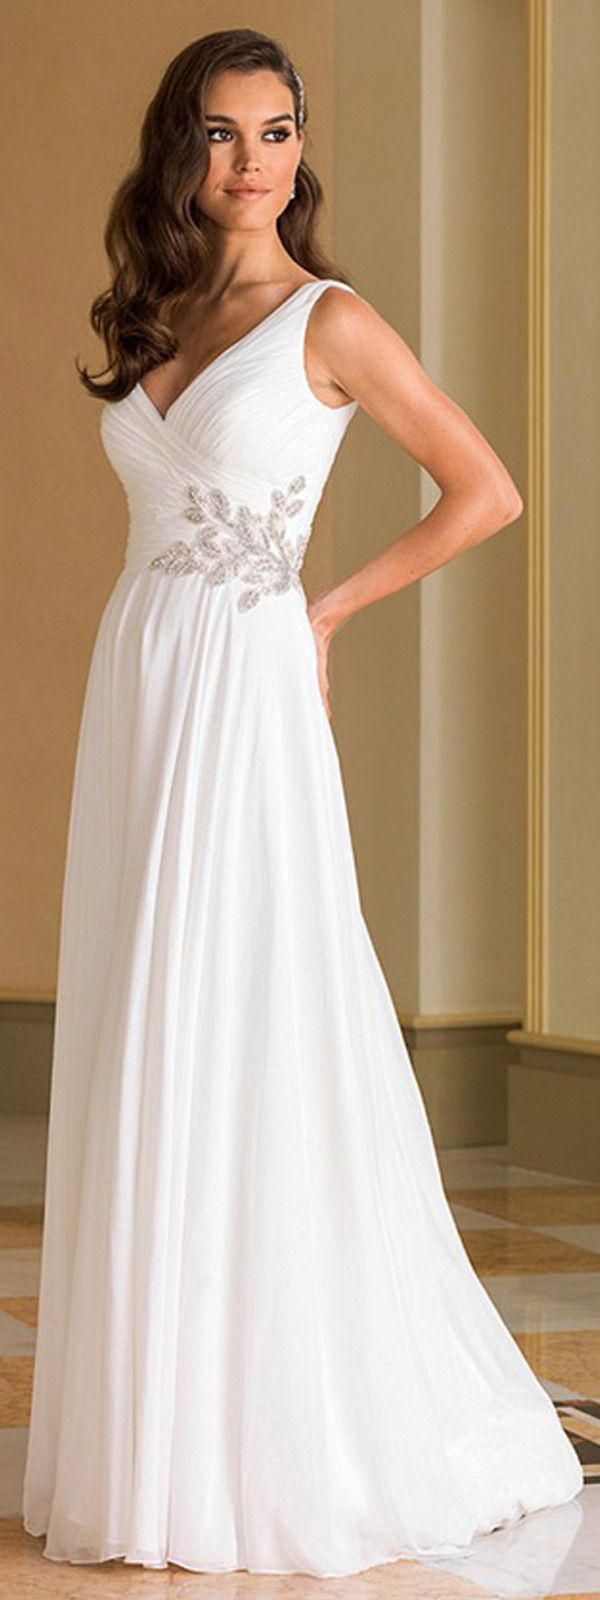 Flowing Chiffon & Stretch Satin V-Neck A-Line Wedding Dresses With Pleats